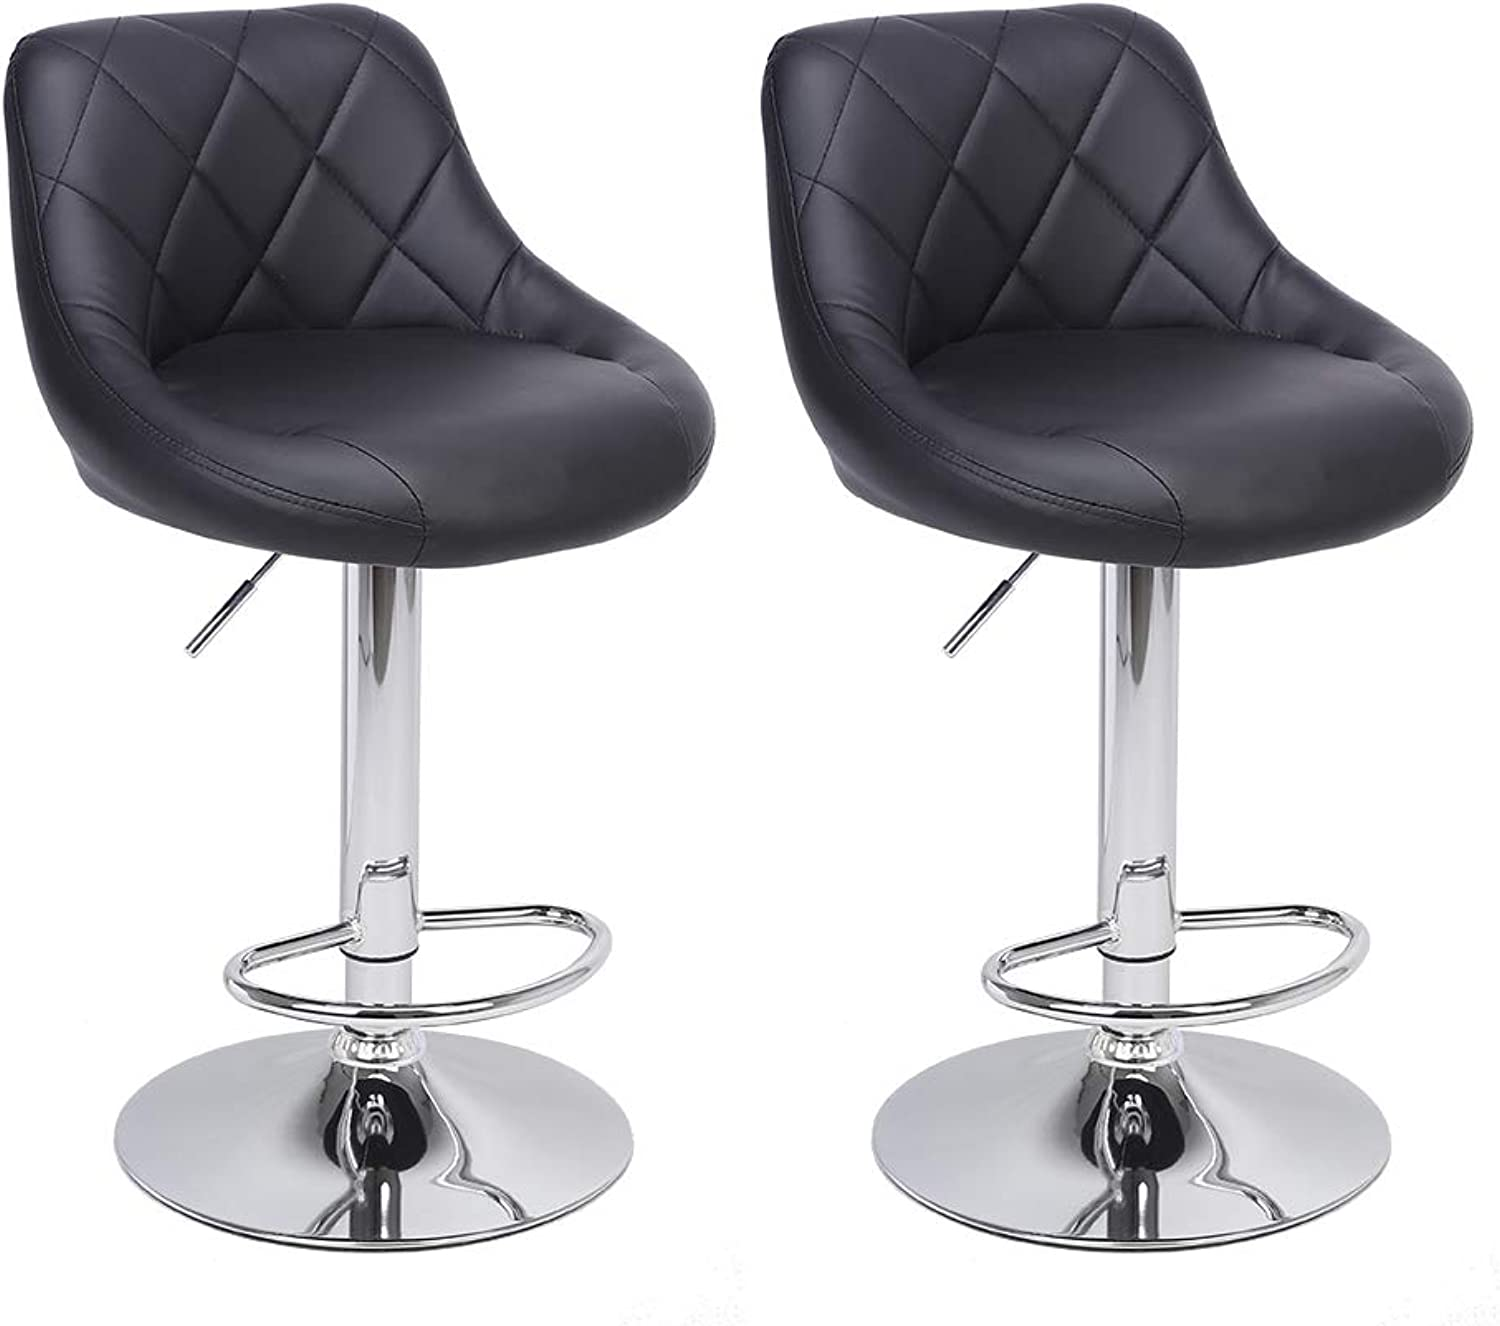 HIKTY Bar Chairs Adjustable Hydraulic Bar Stools Swivel Barstool Chairs Pub Kitchen Counter Height Chairs Footrest, Set of 2 (Black)